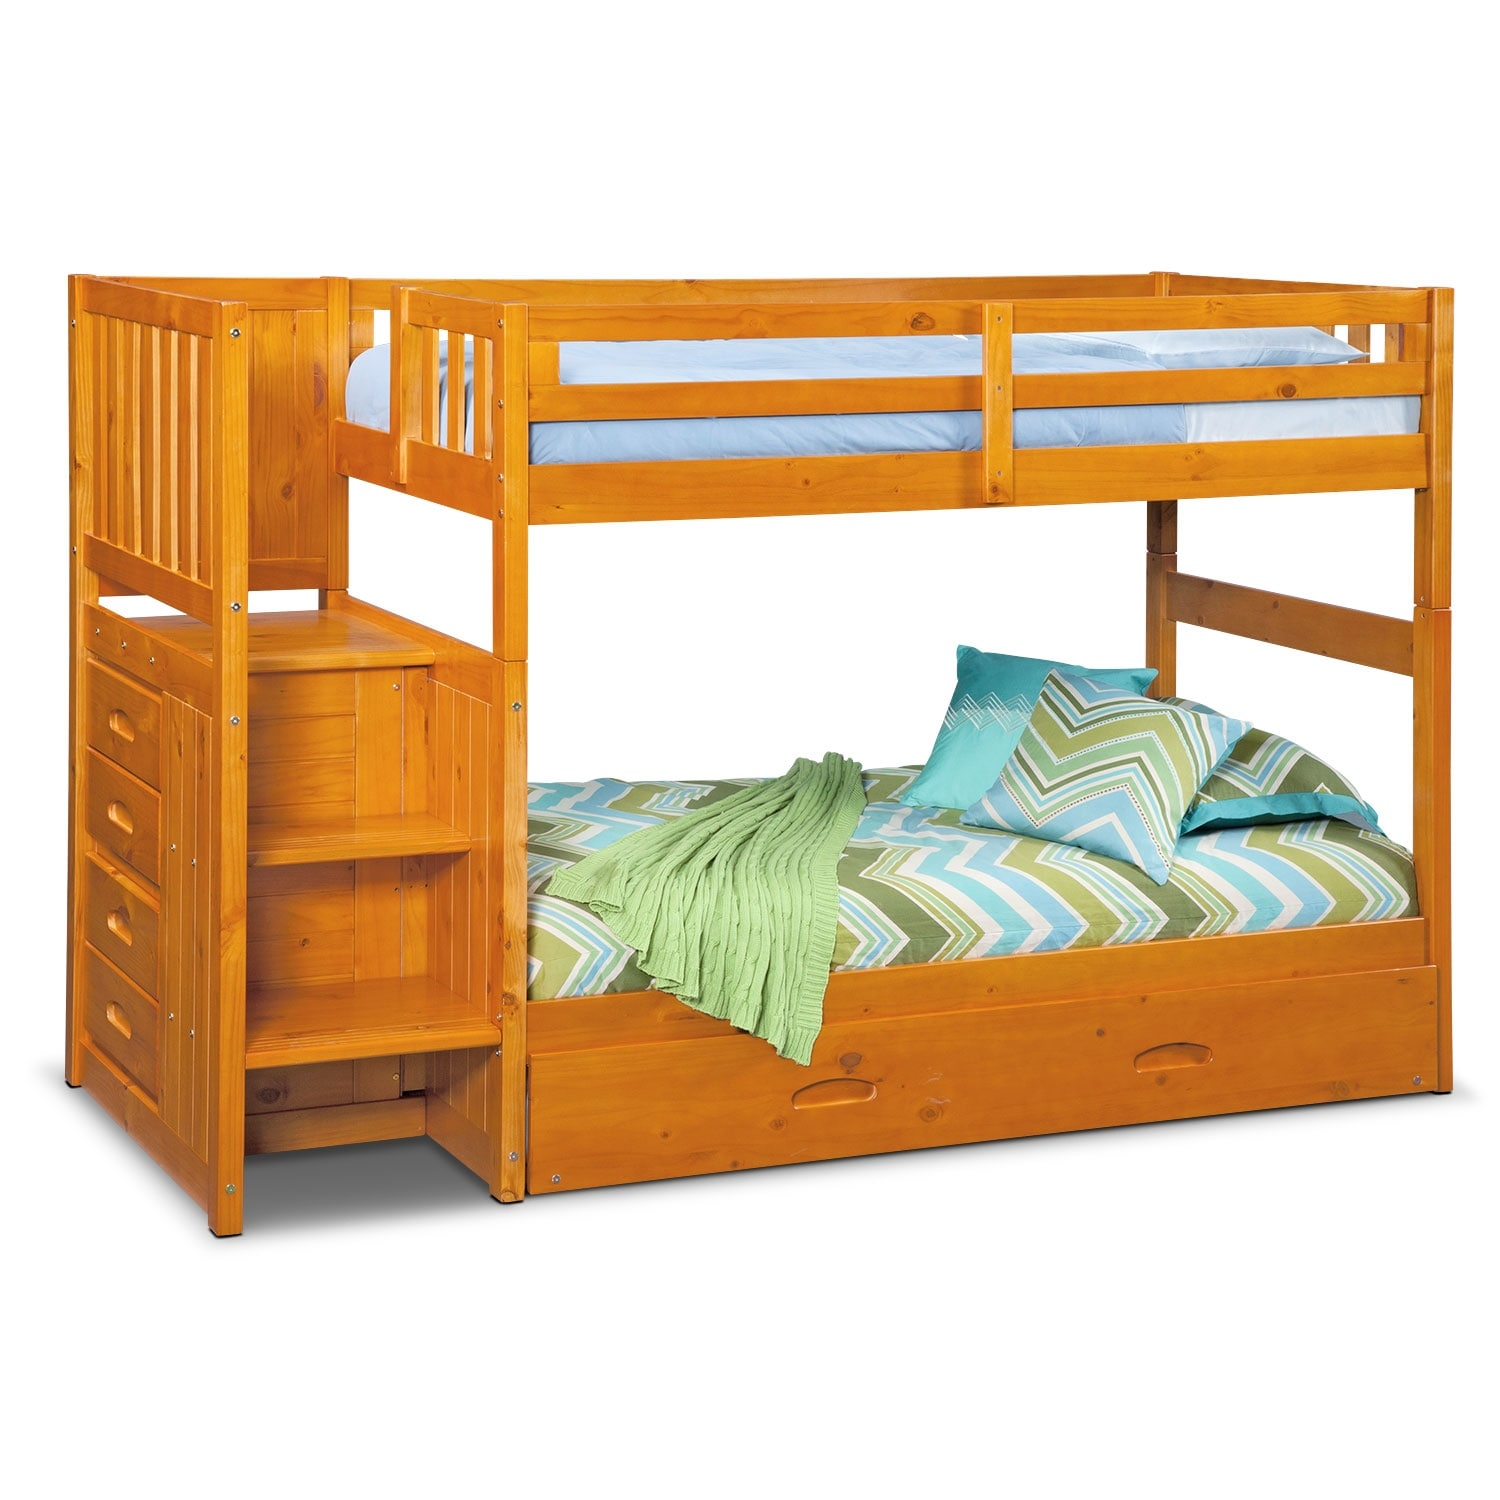 Kids Furniture - Ranger Pine Twin/Twin Bunk Bed w/ Stairs, Storage and Trundle